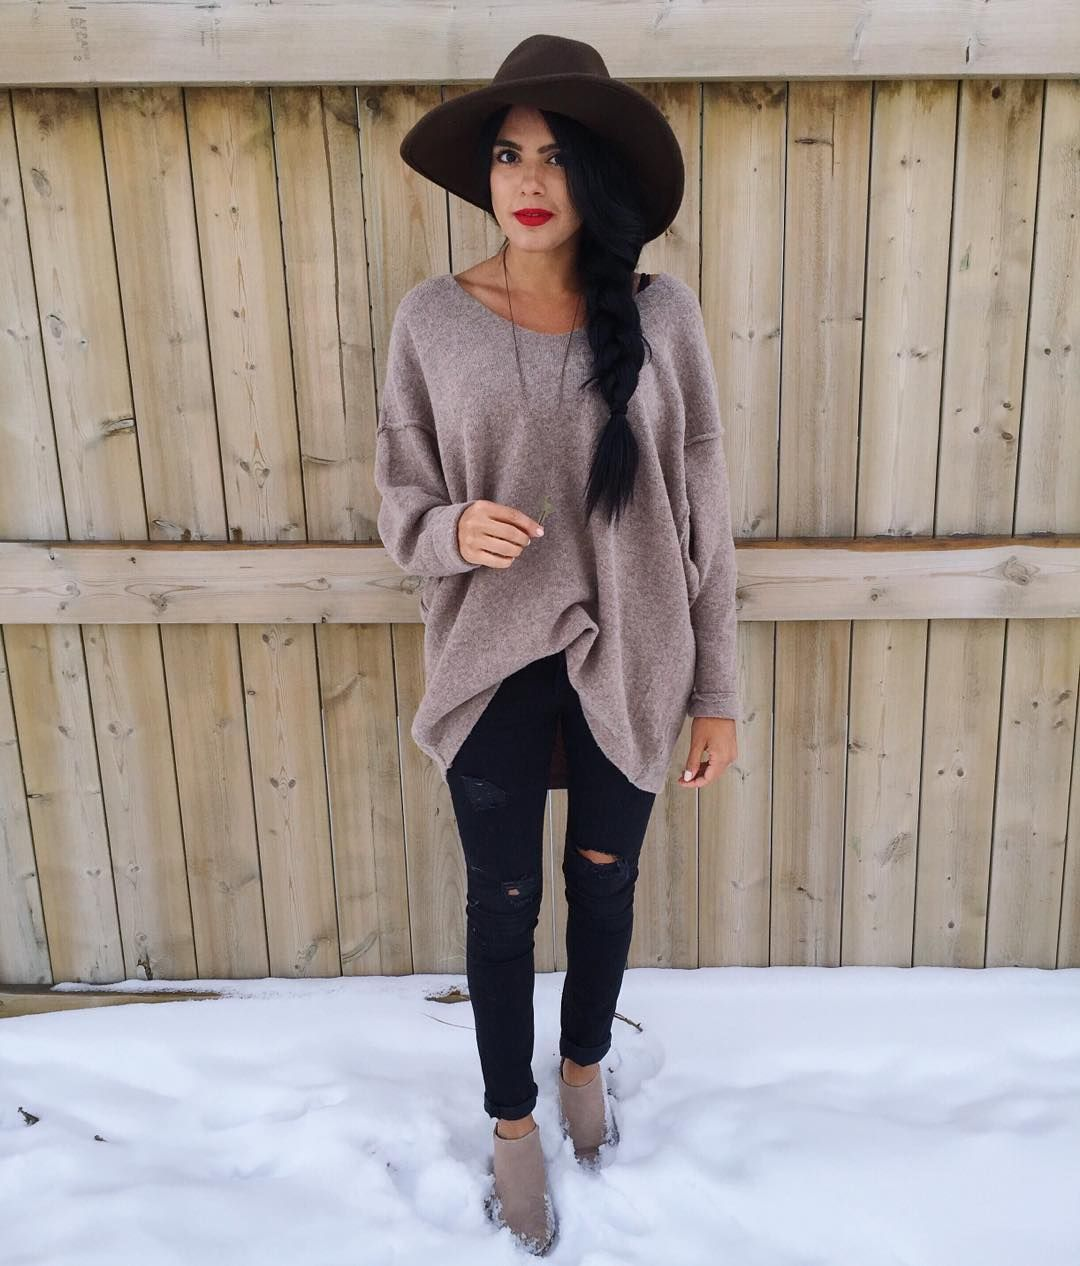 Cozy winter/fall look | My Style | Pinterest | Cozy winter, Cozy ...